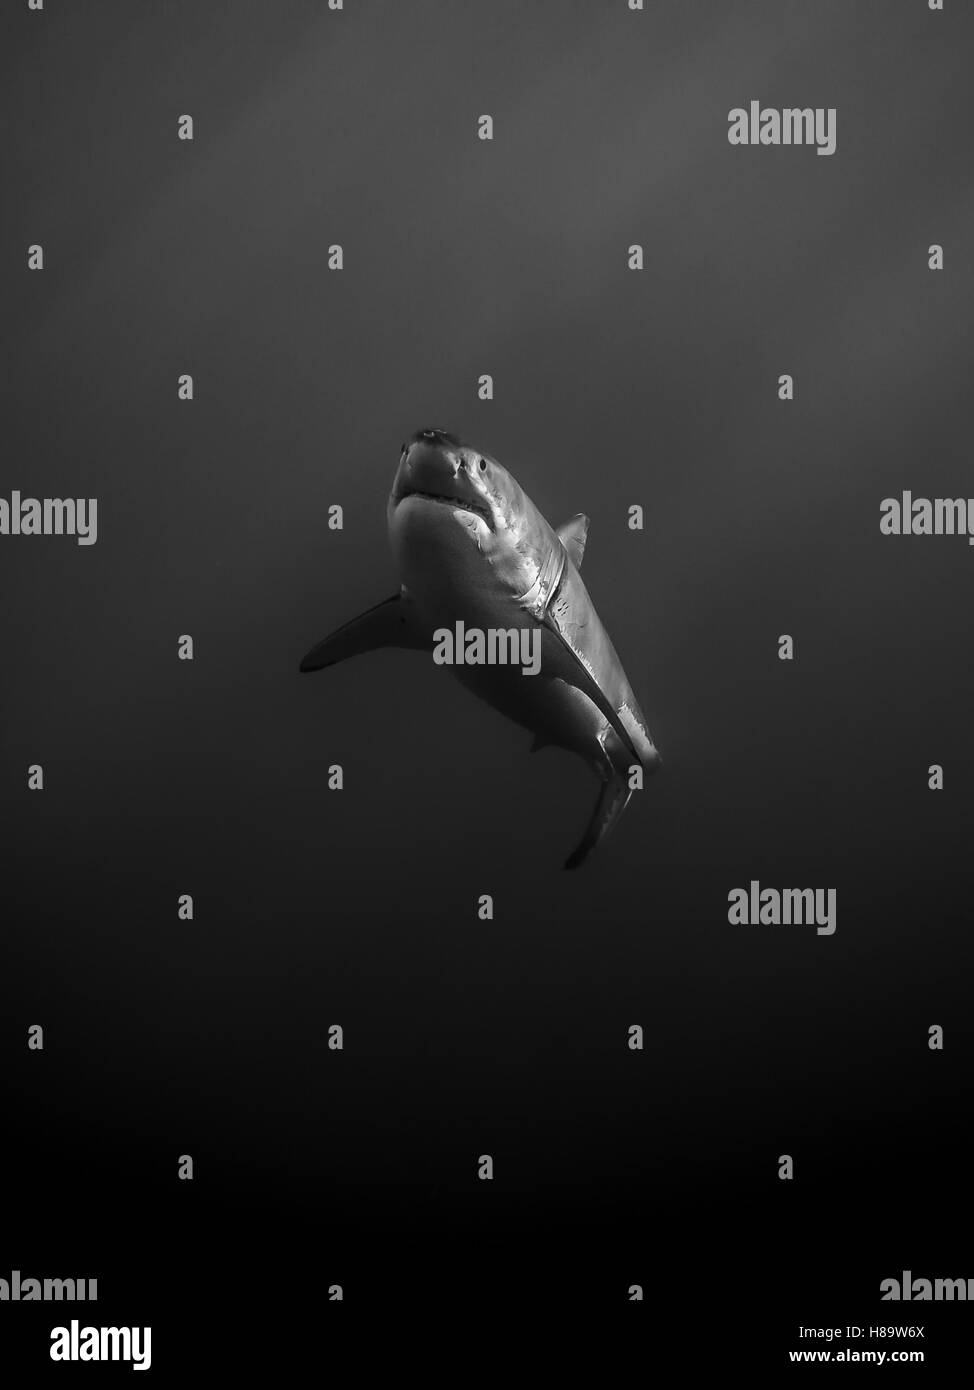 Great white shark alone in the dark in the Pacific Ocean at Guadalupe Island in Mexico - Stock Image